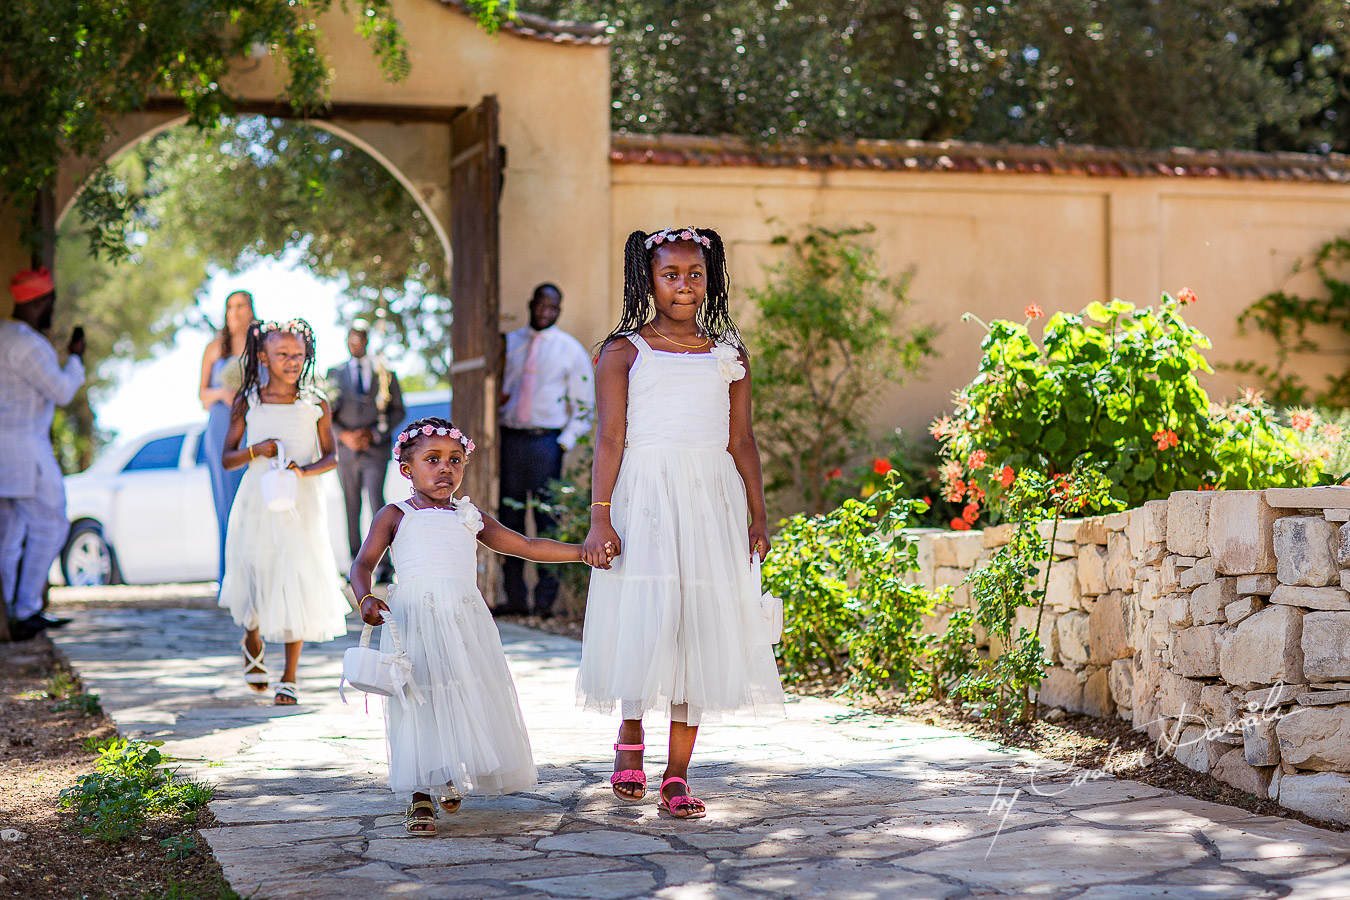 Moments with flower girls announcing the arrival of the bride captured a wedding at Minthis Hills in Cyprus, by Cristian Dascalu.